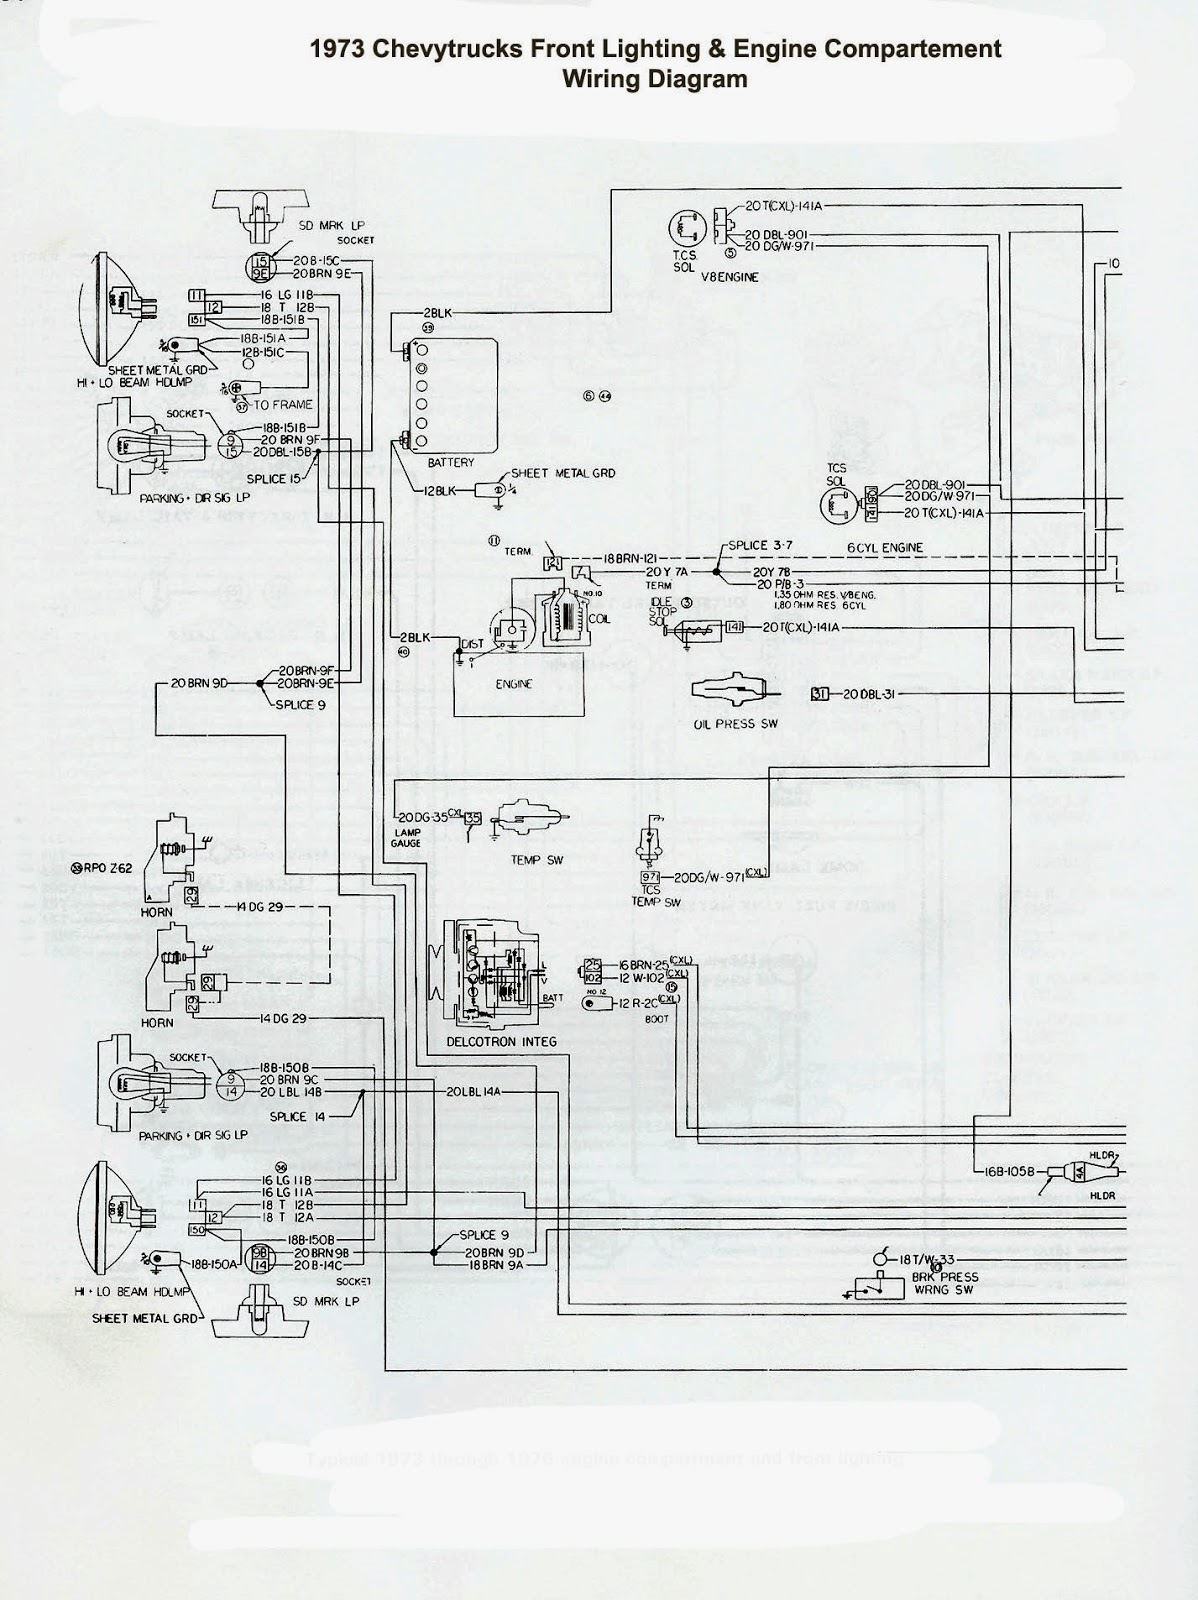 1967 camaro hideaway headlight wiring diagram images 1967 camaro 1969 camaro rs headlight switch on 69 vacuum diagram